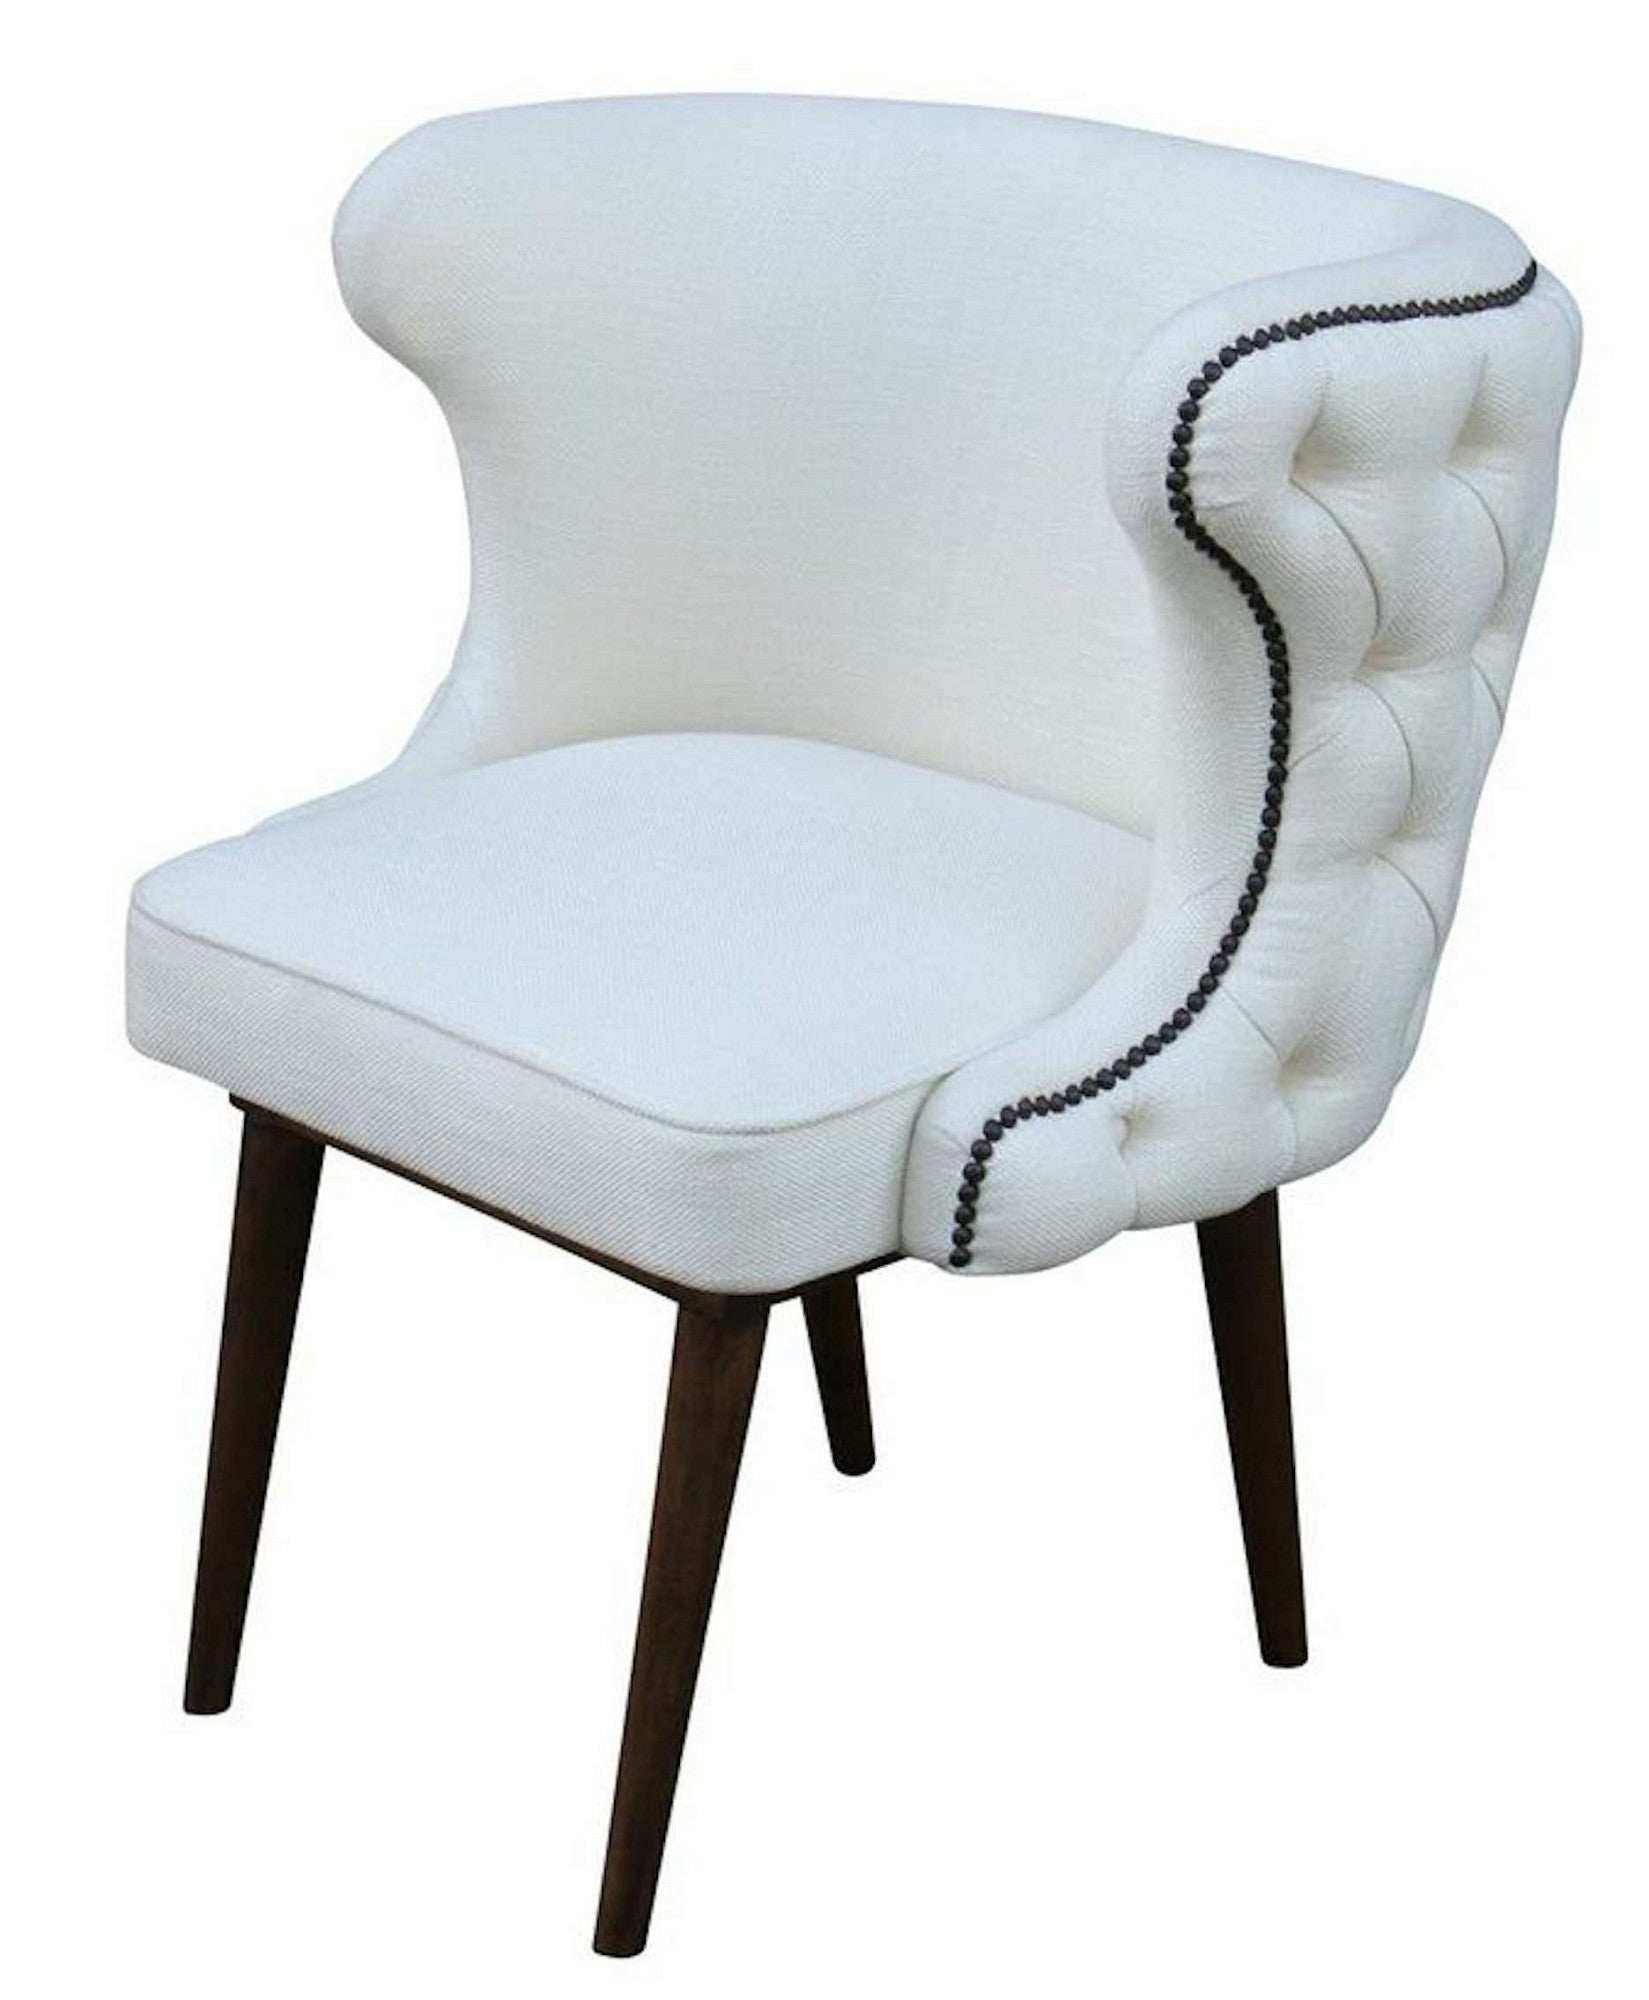 Tufted Dining Chair Different Color Material U003d